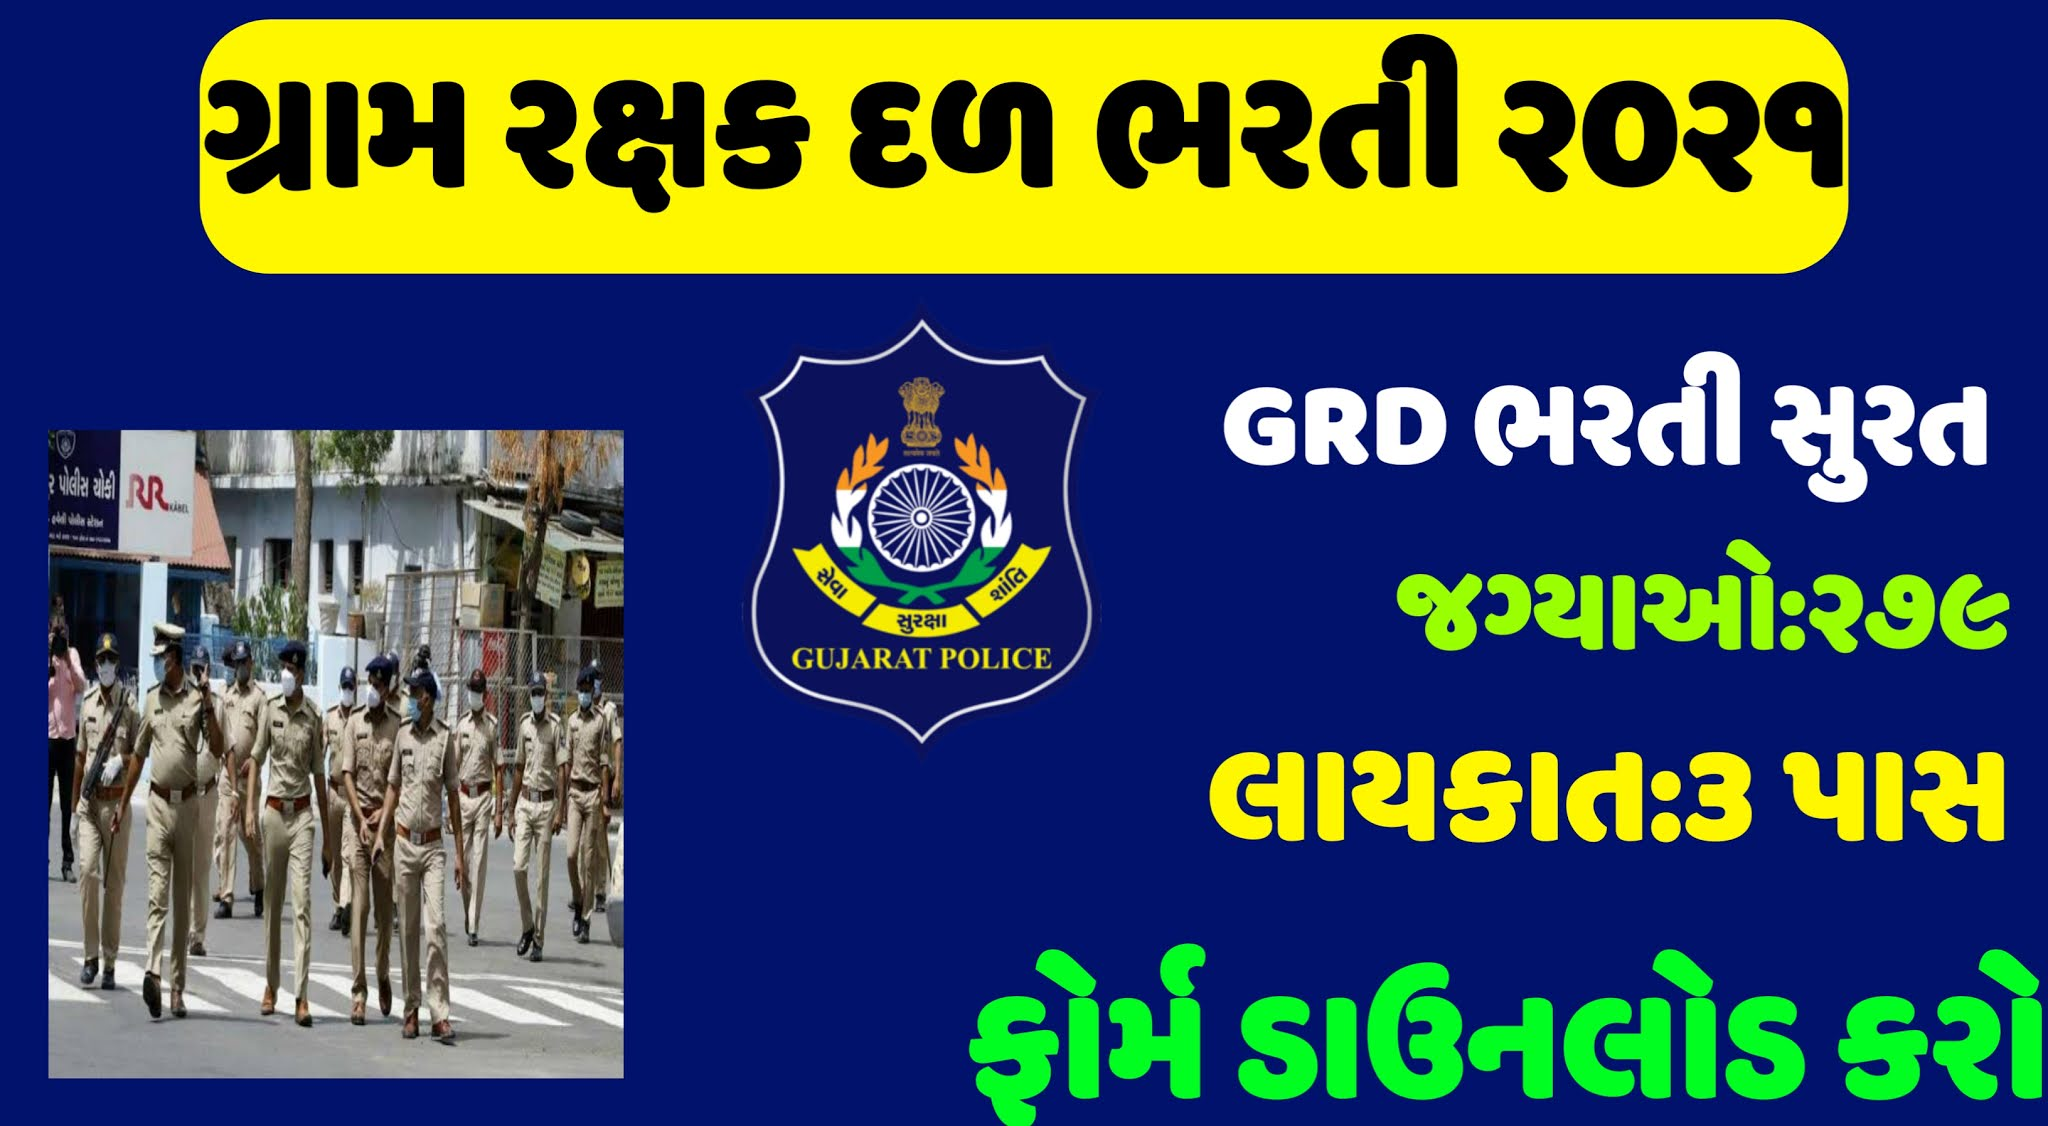 Surat grd bharti 2021, Surat grd vacancy 2021,Home guard jobs in surat,surat grd recruitment 2021,Surat grd bharti application form